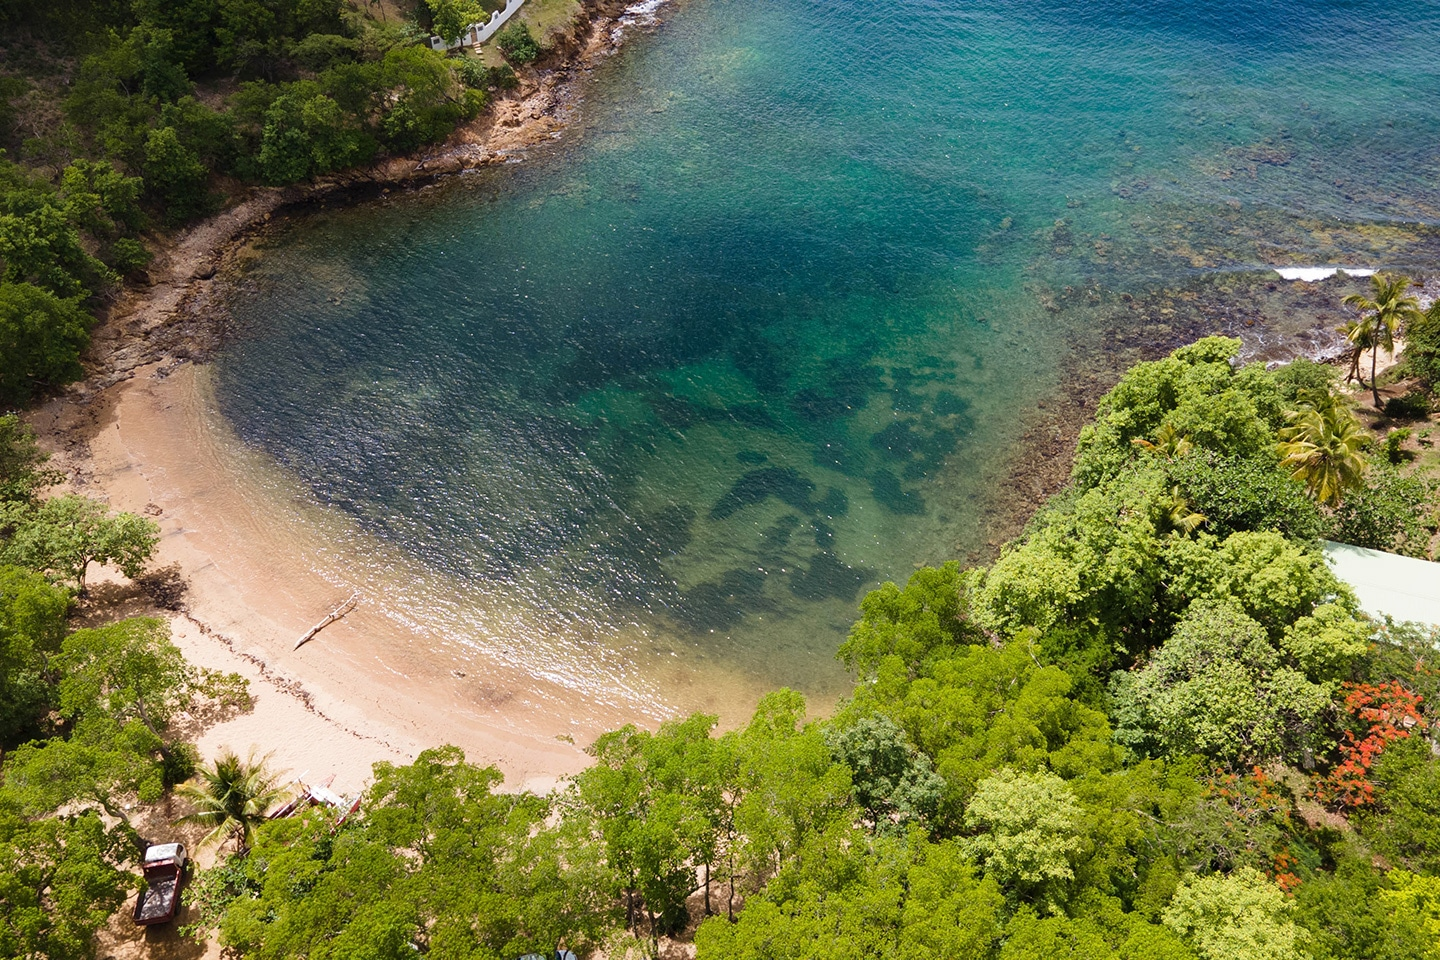 Secluded bay in St Lucia